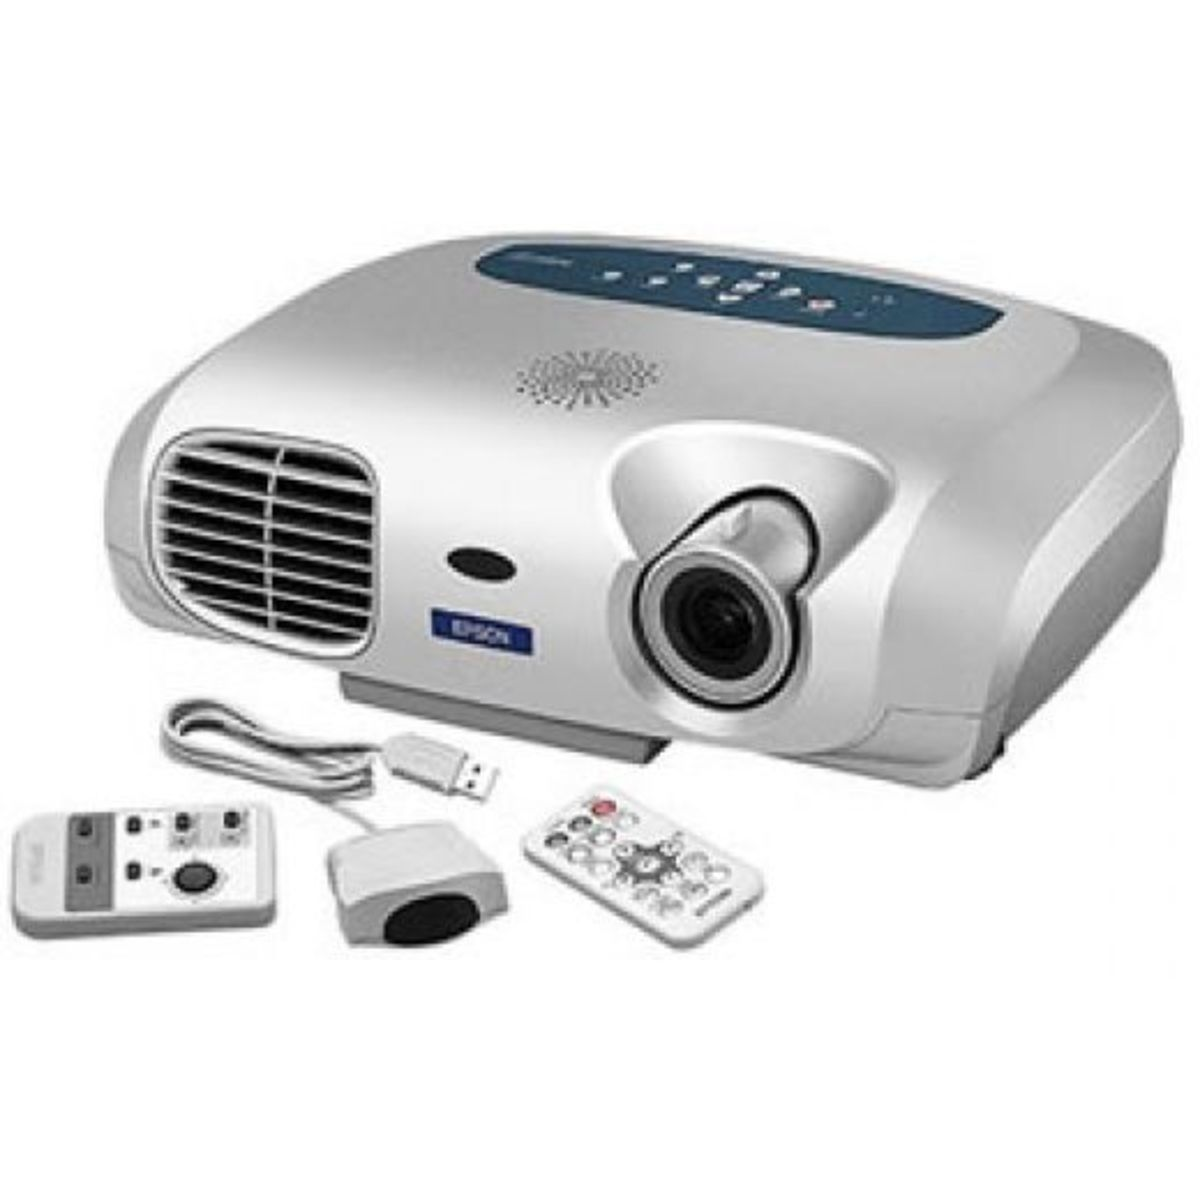 LCD projector displays images, text and learning videos enough for the whole class to see.